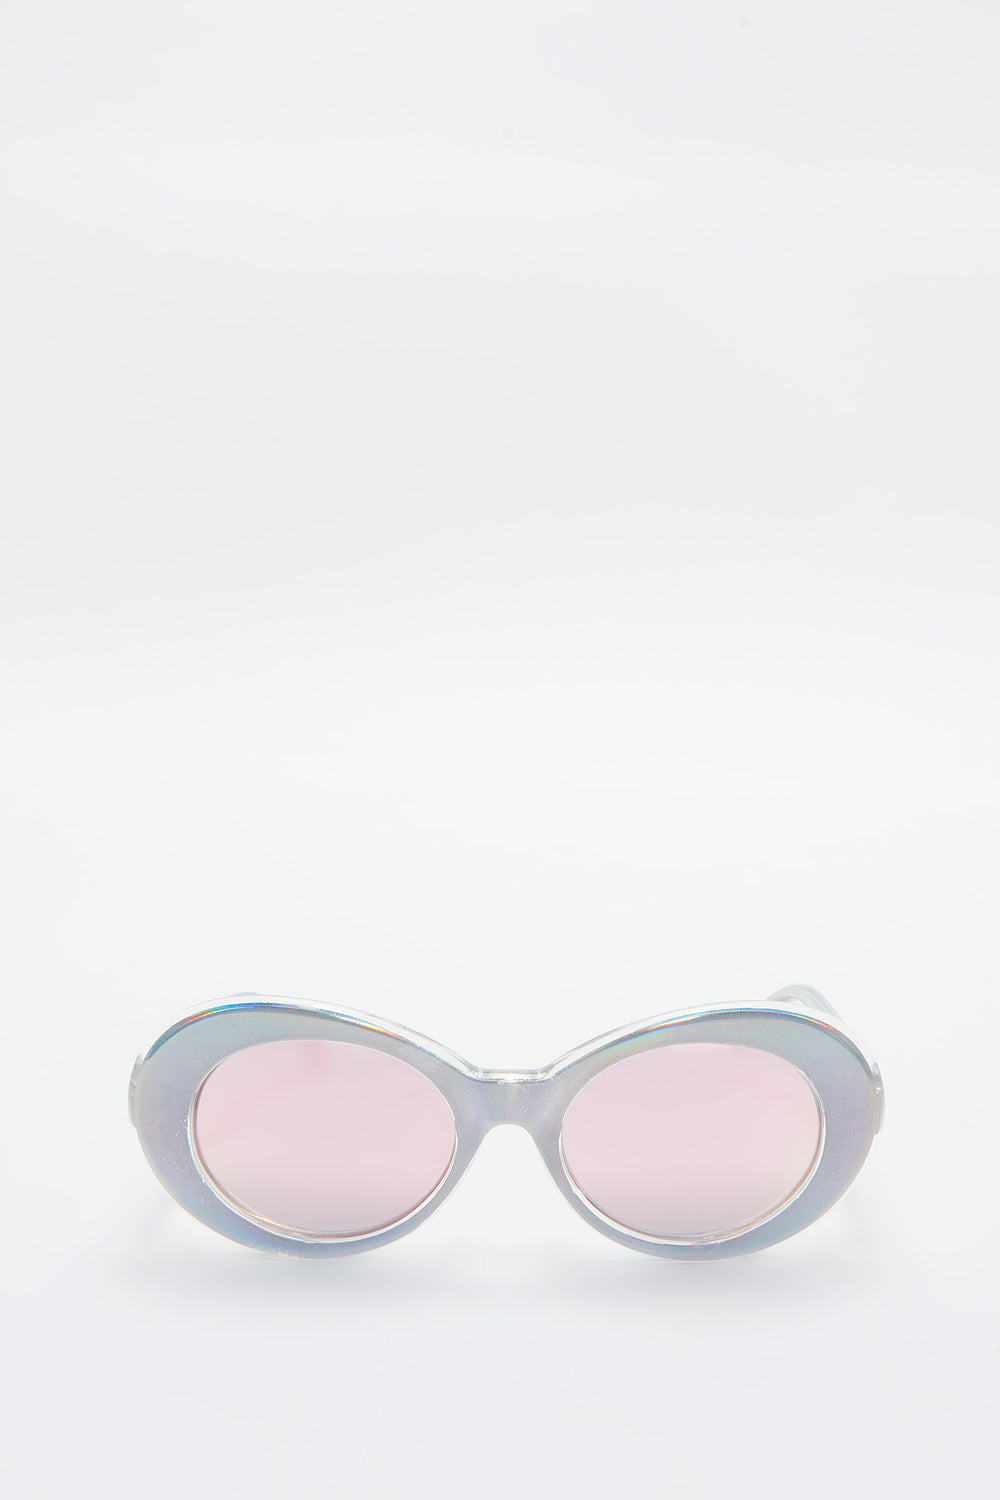 Holographic Oval Retro Sunglasses Pink